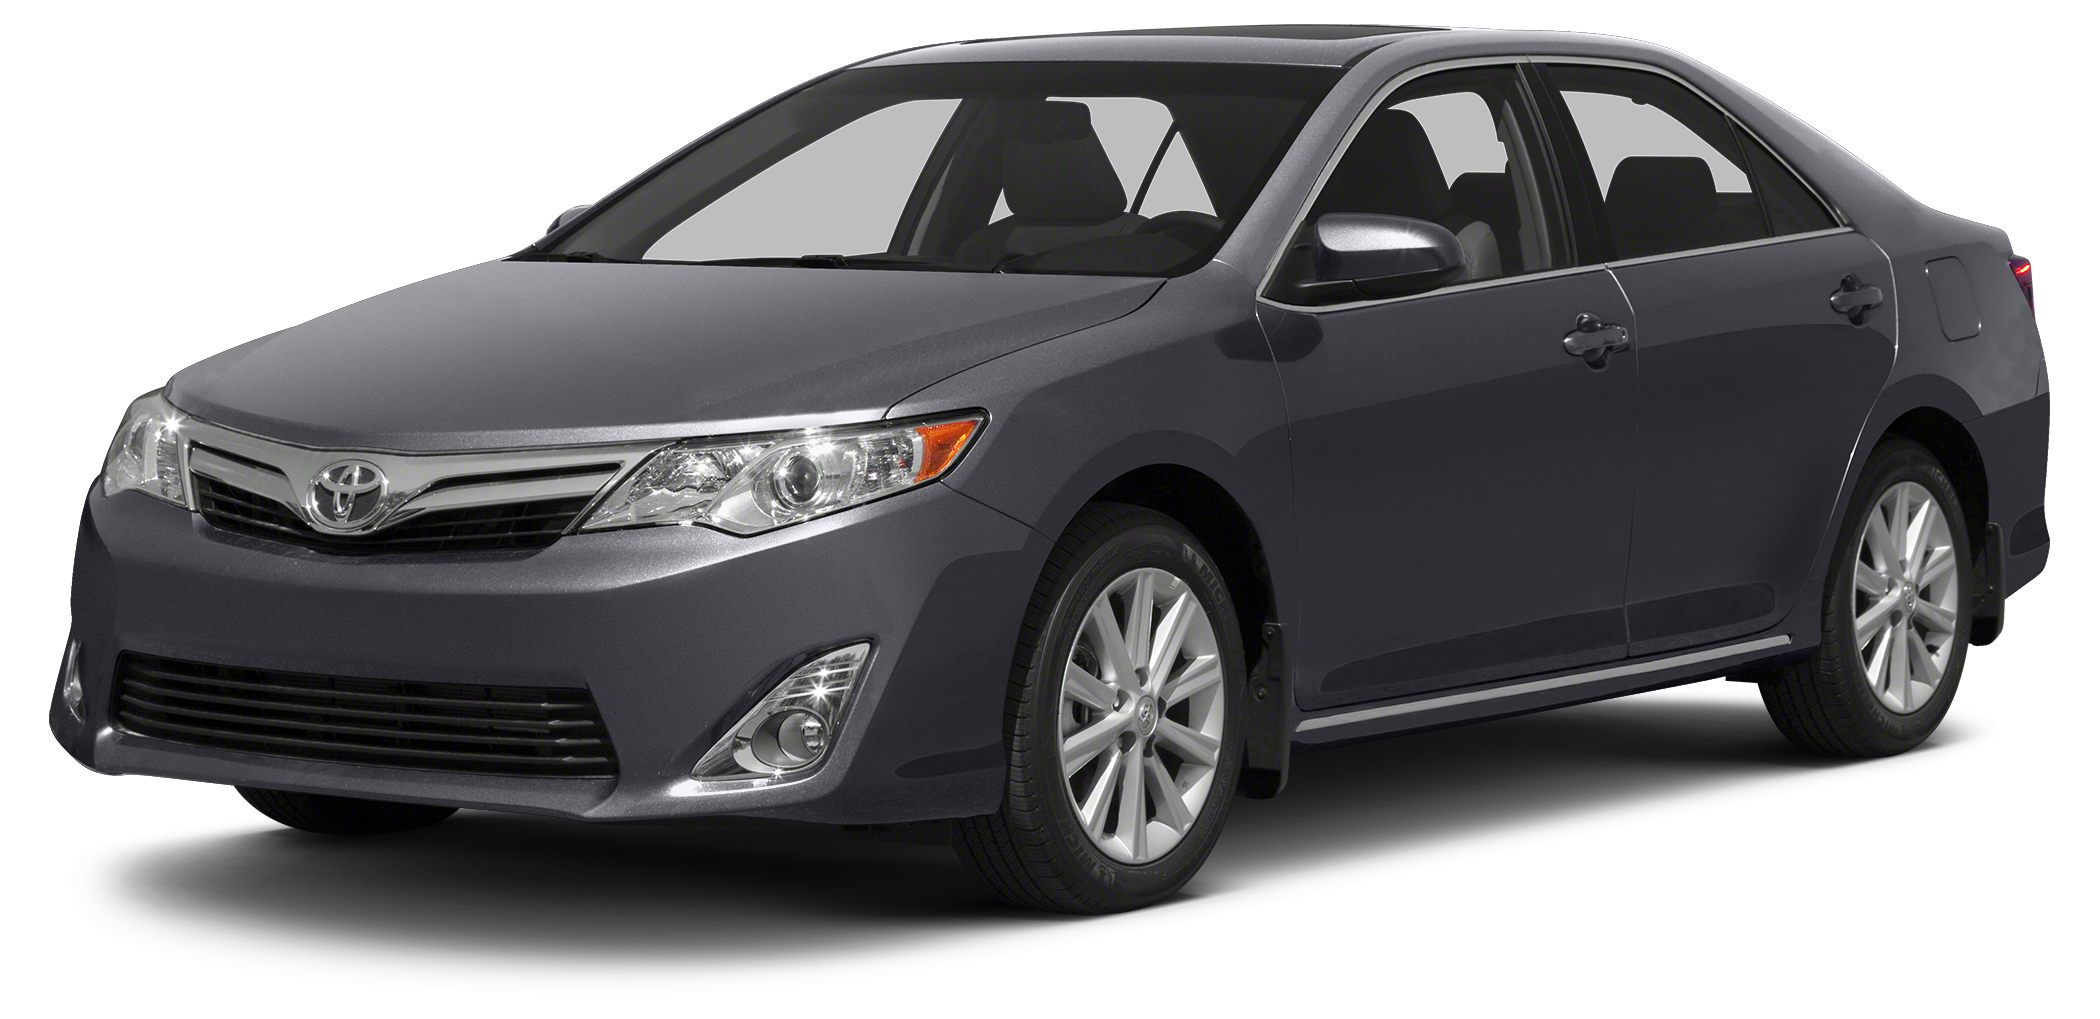 2012 Toyota Camry LE CARFAX 1-Owner GREAT MILES 33886 COSMIC GRAY MICA exterior and ASH interio